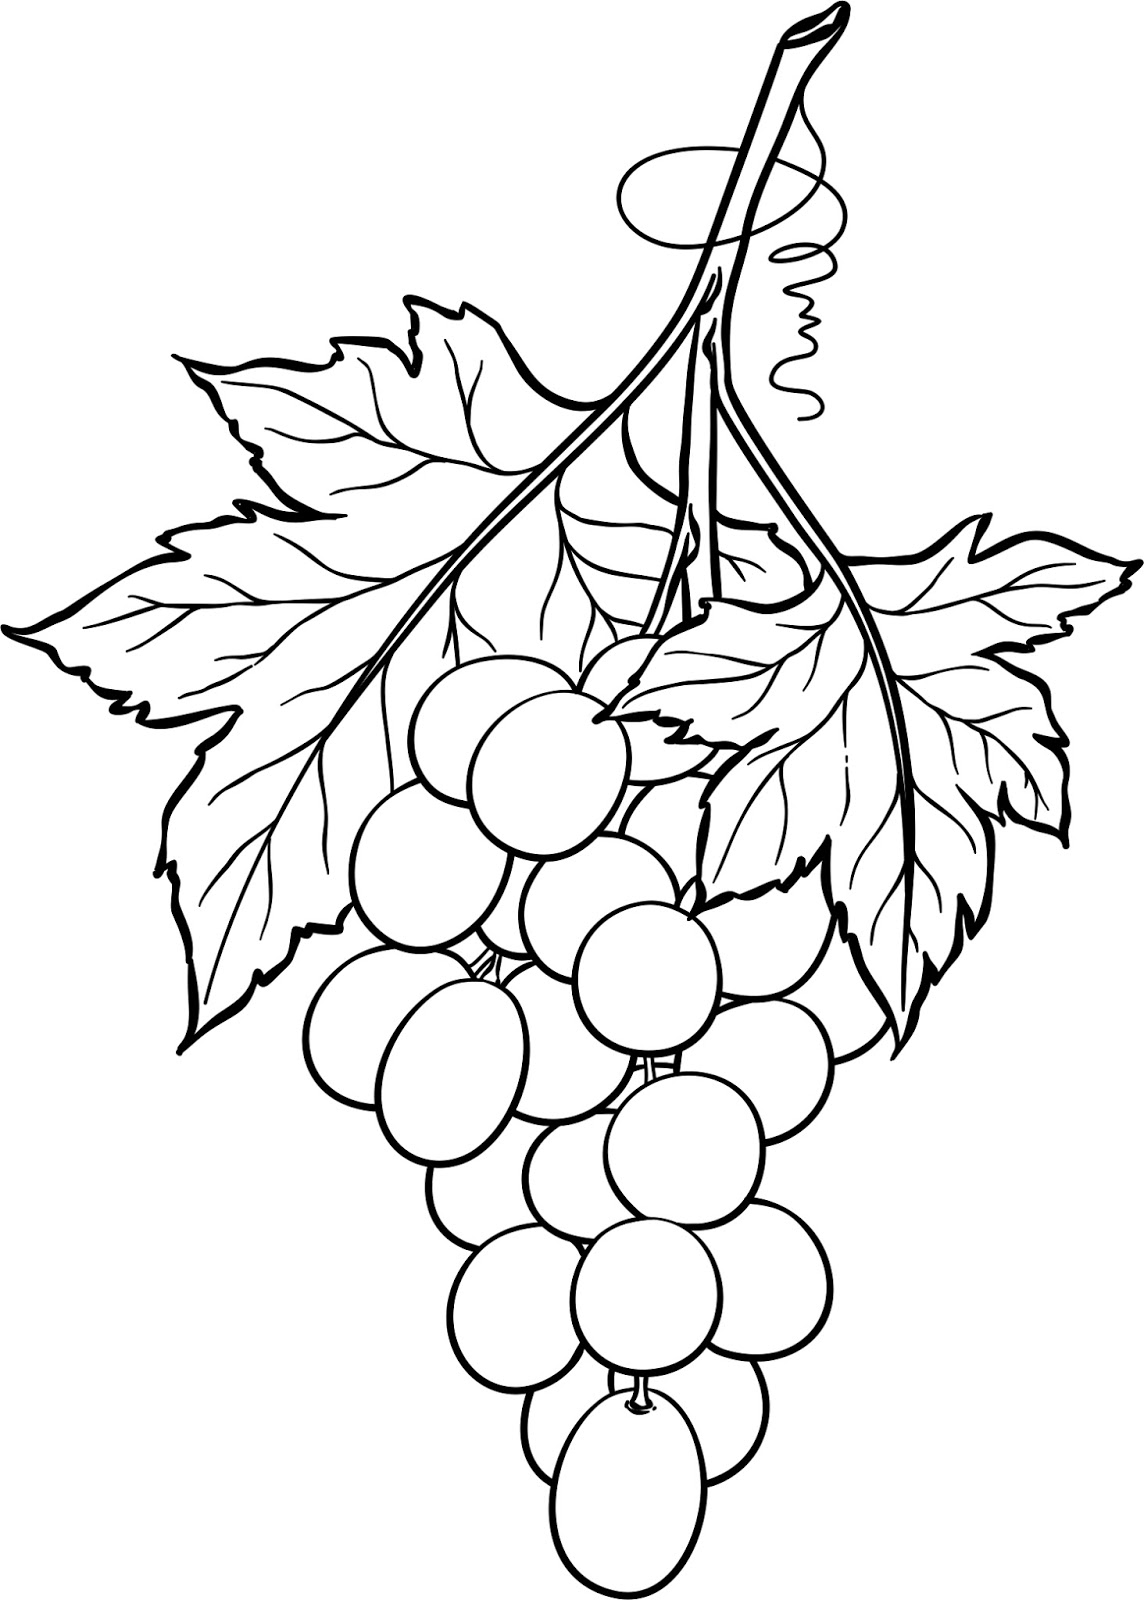 1144x1600 Beccy's Place Bunch Of Grapes